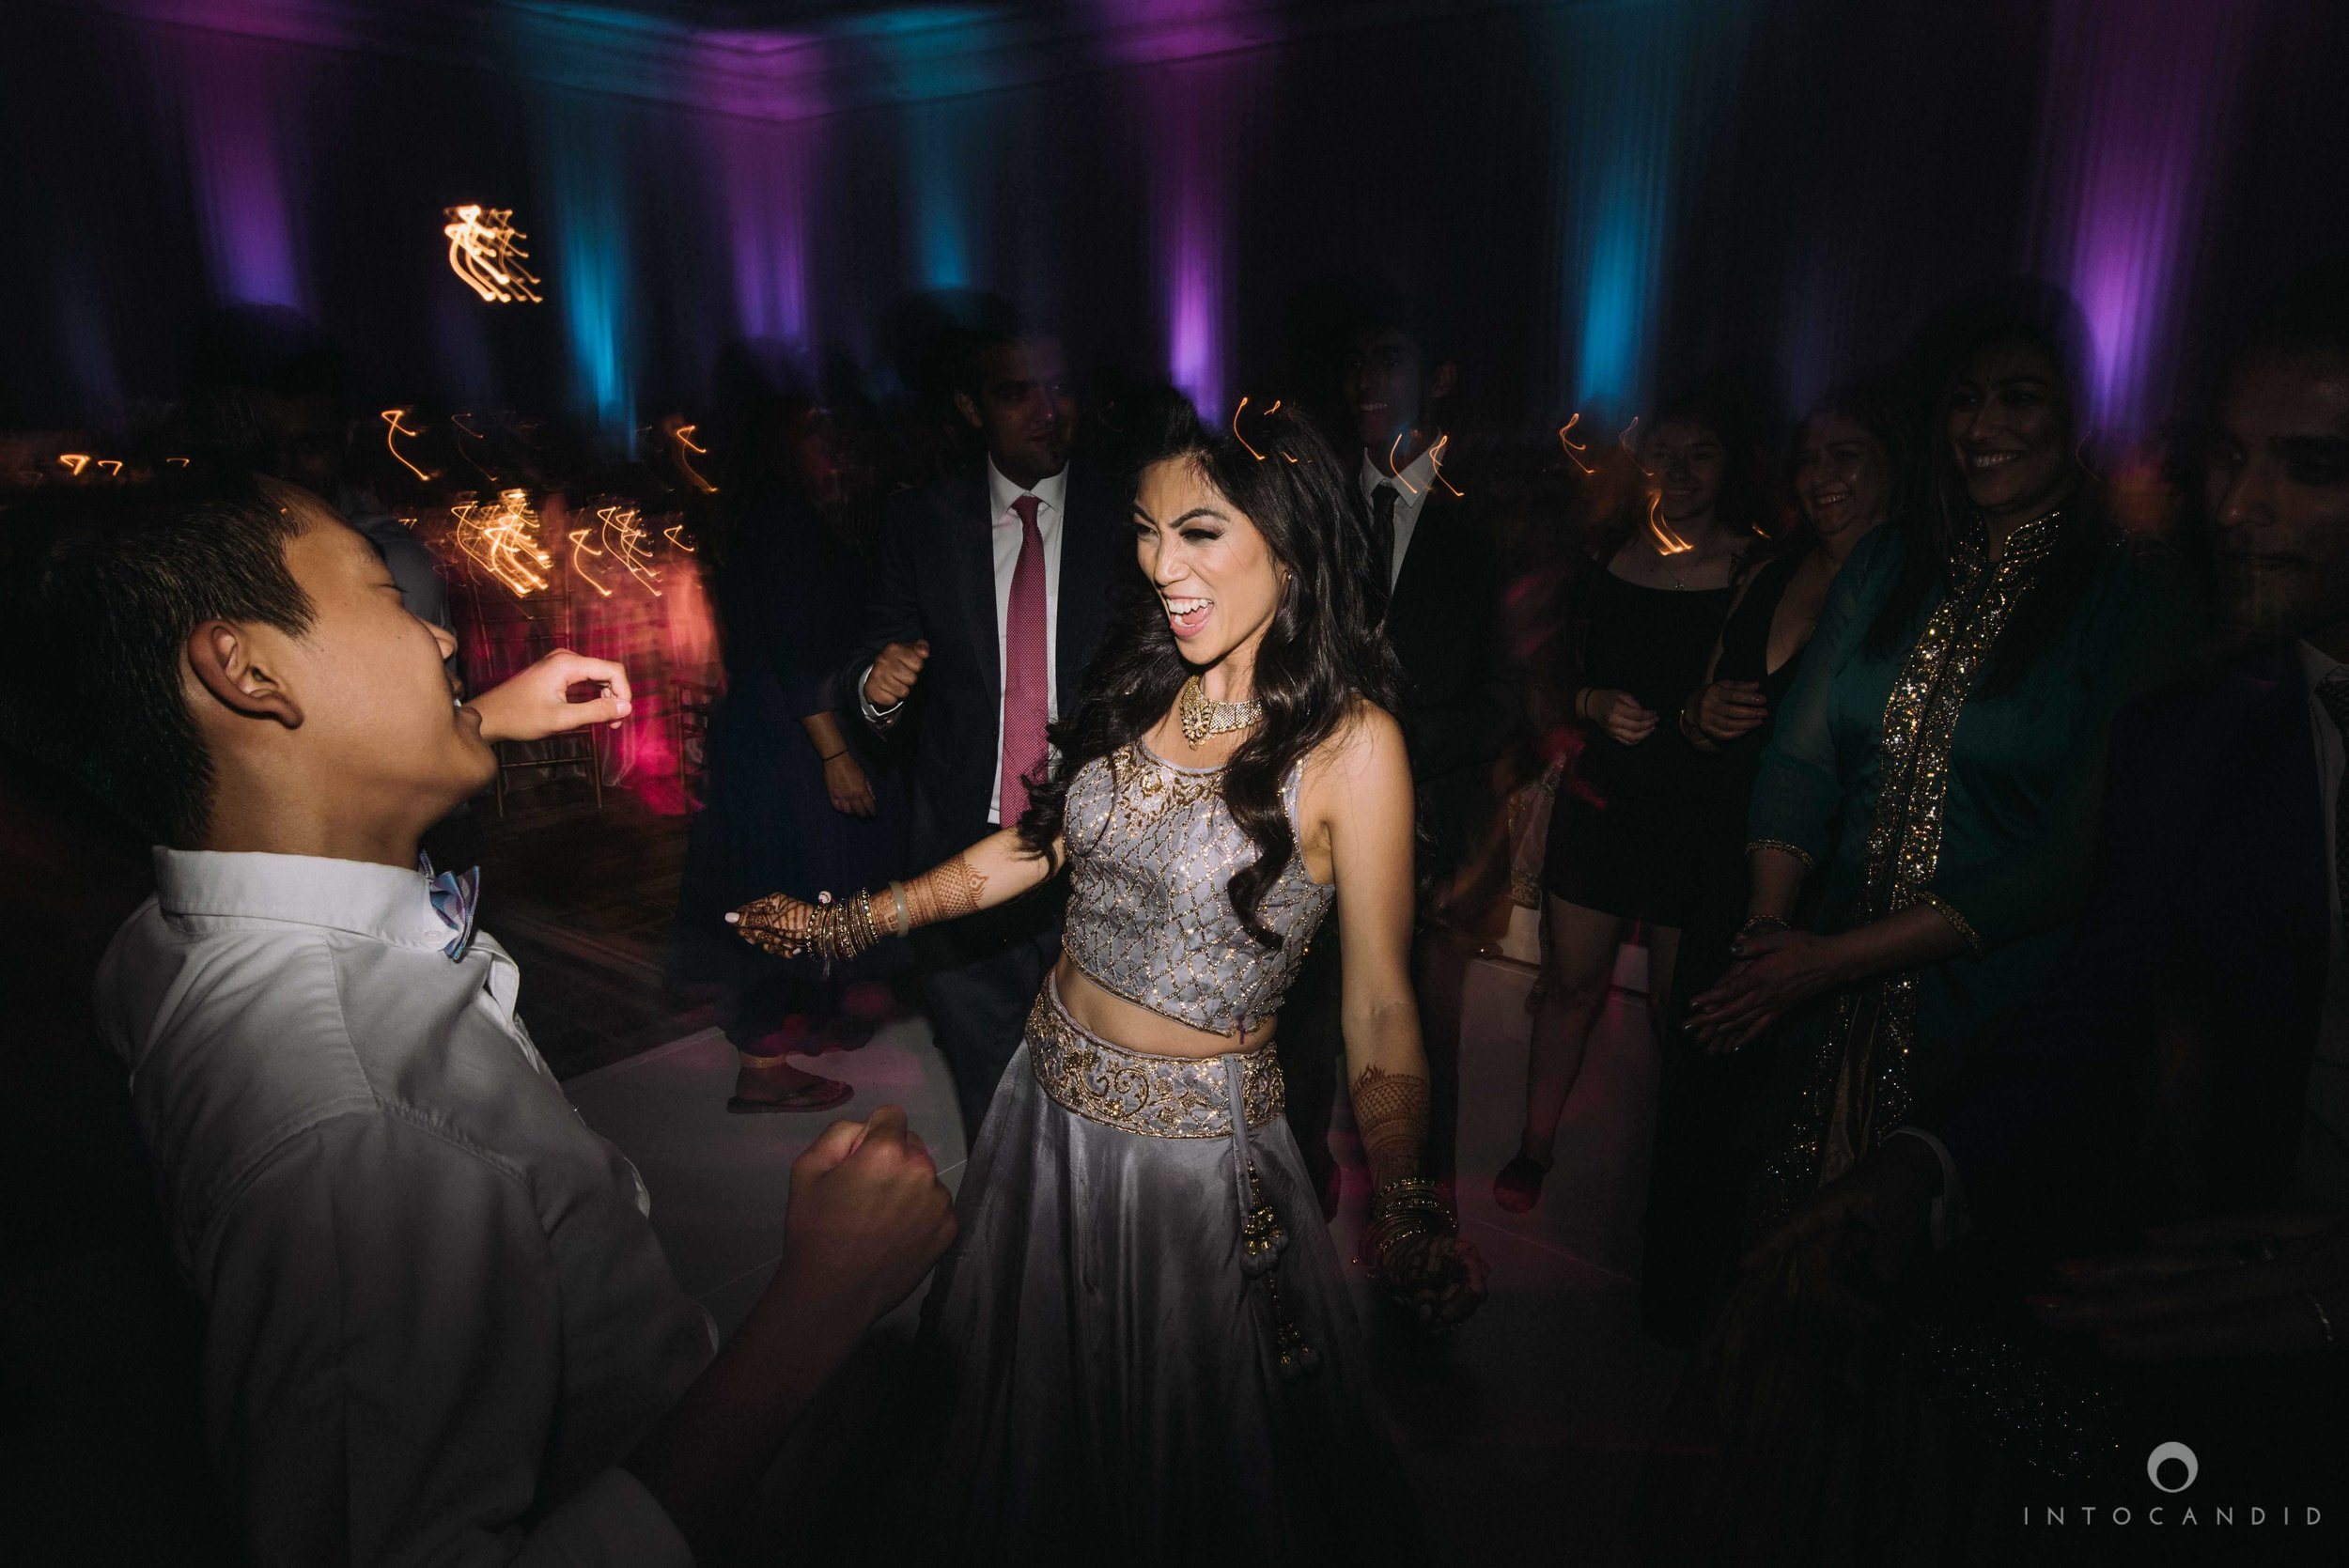 LosAngeles_Indian_Wedding_Photographer_AS_164.jpg